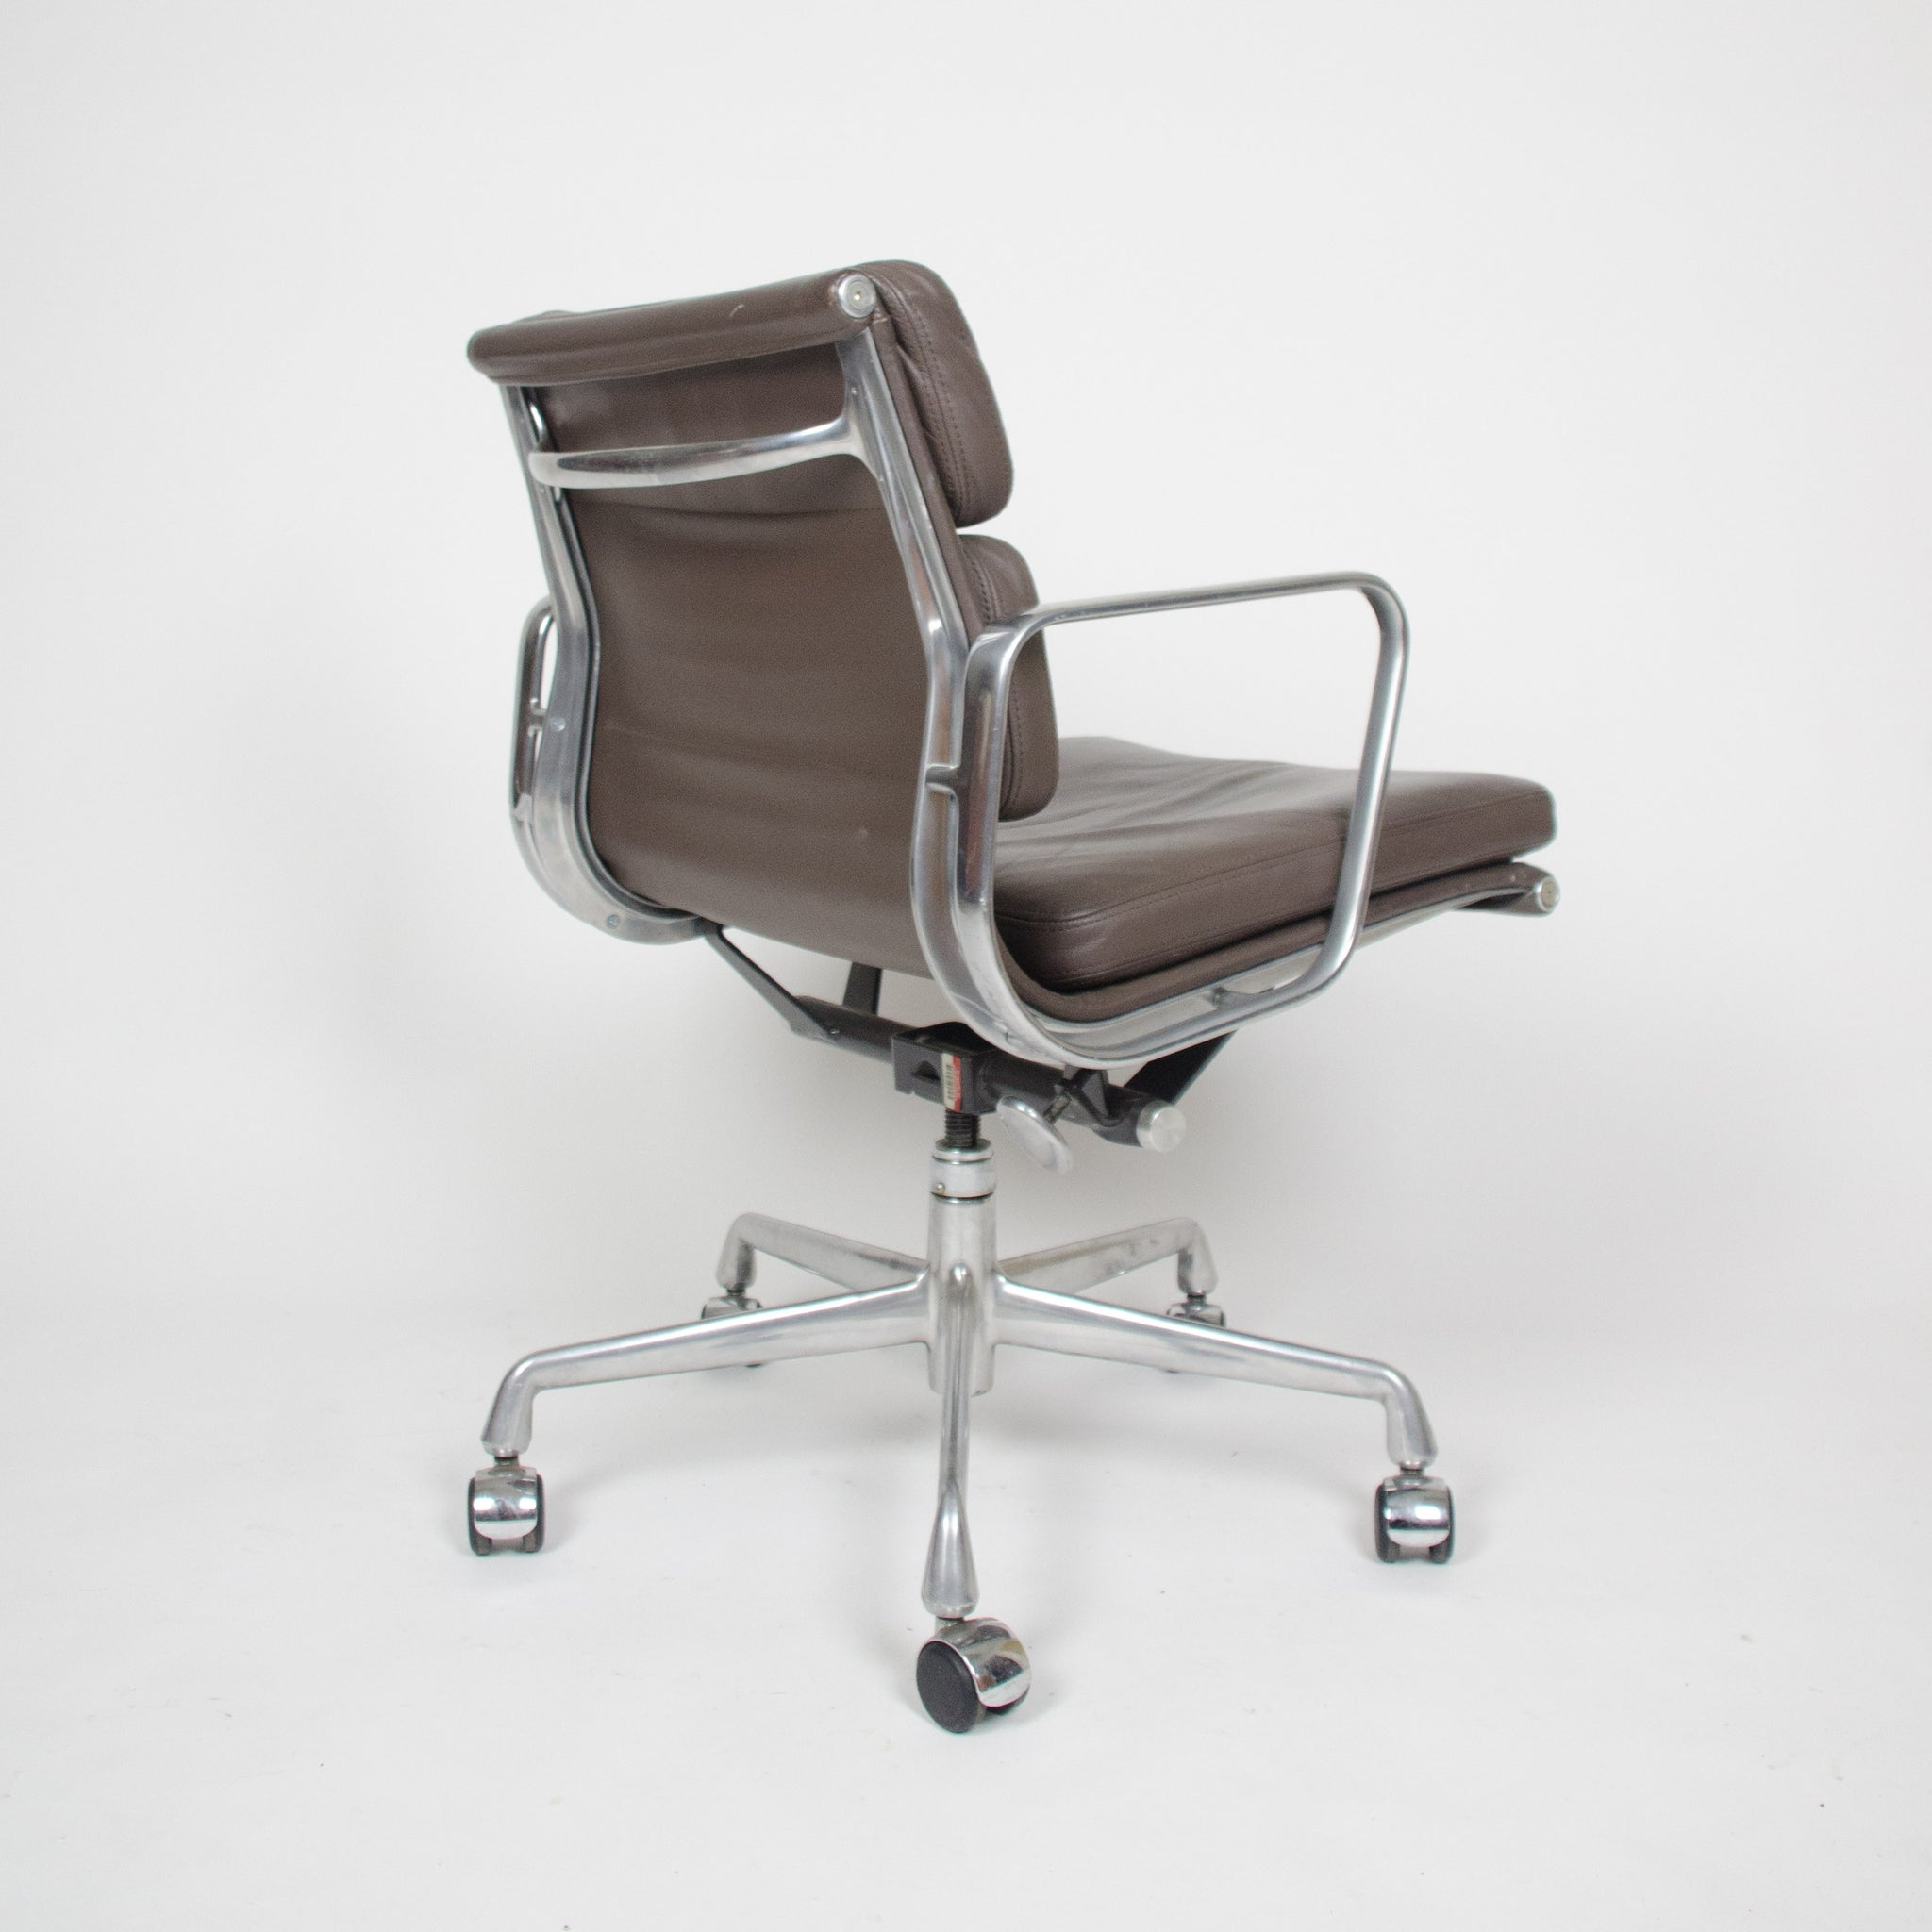 SOLD Eames Herman Miller Soft Pad Aluminum Group Chair Brown Leather Mint 3x